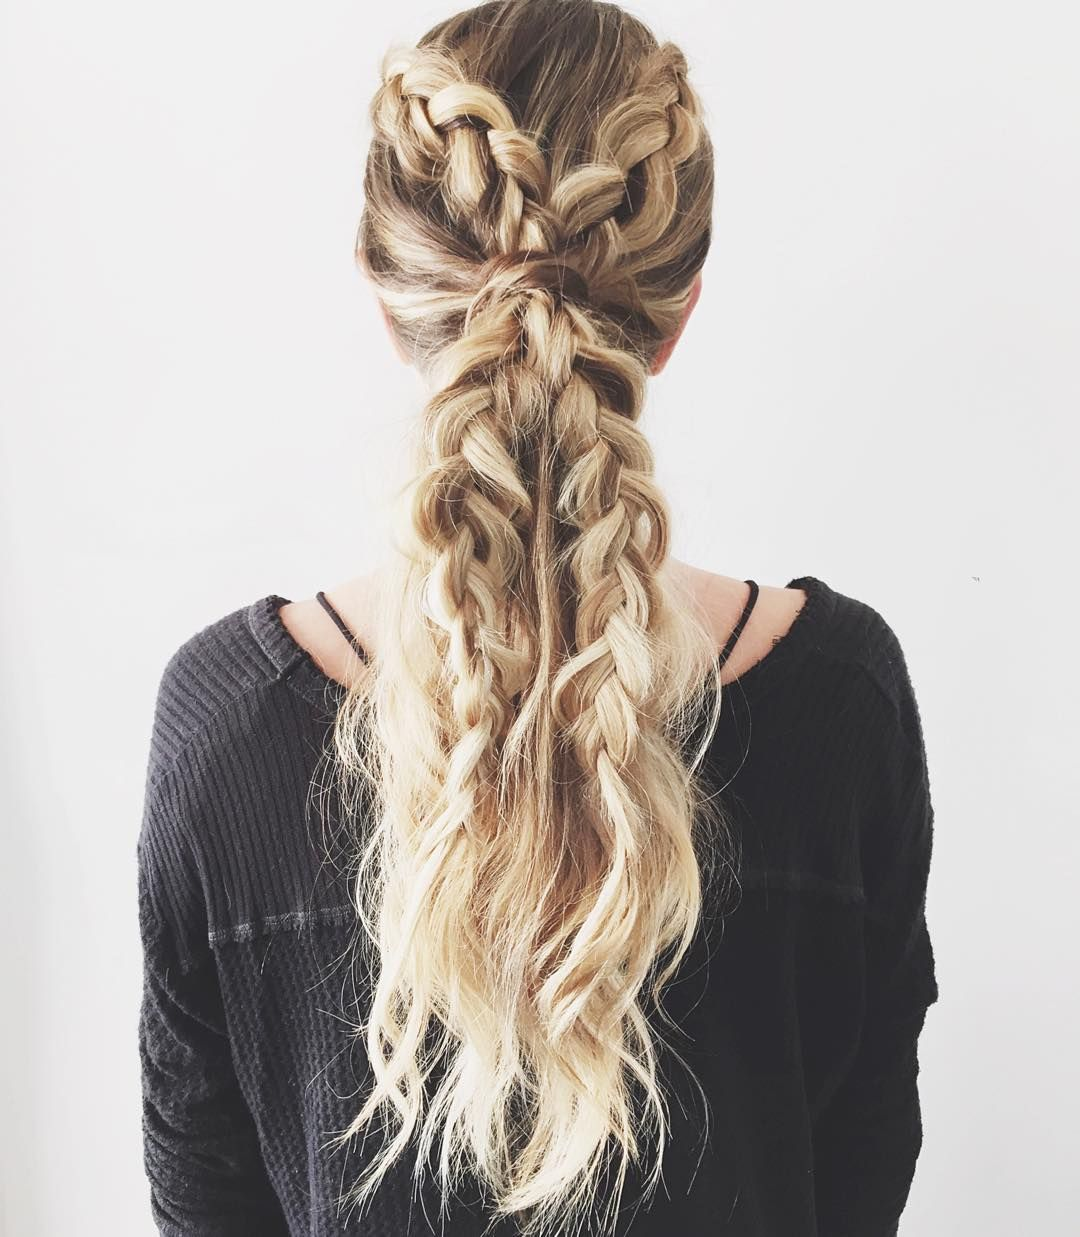 100 of the best braided hairstyles you haven't pinned yet | dutch